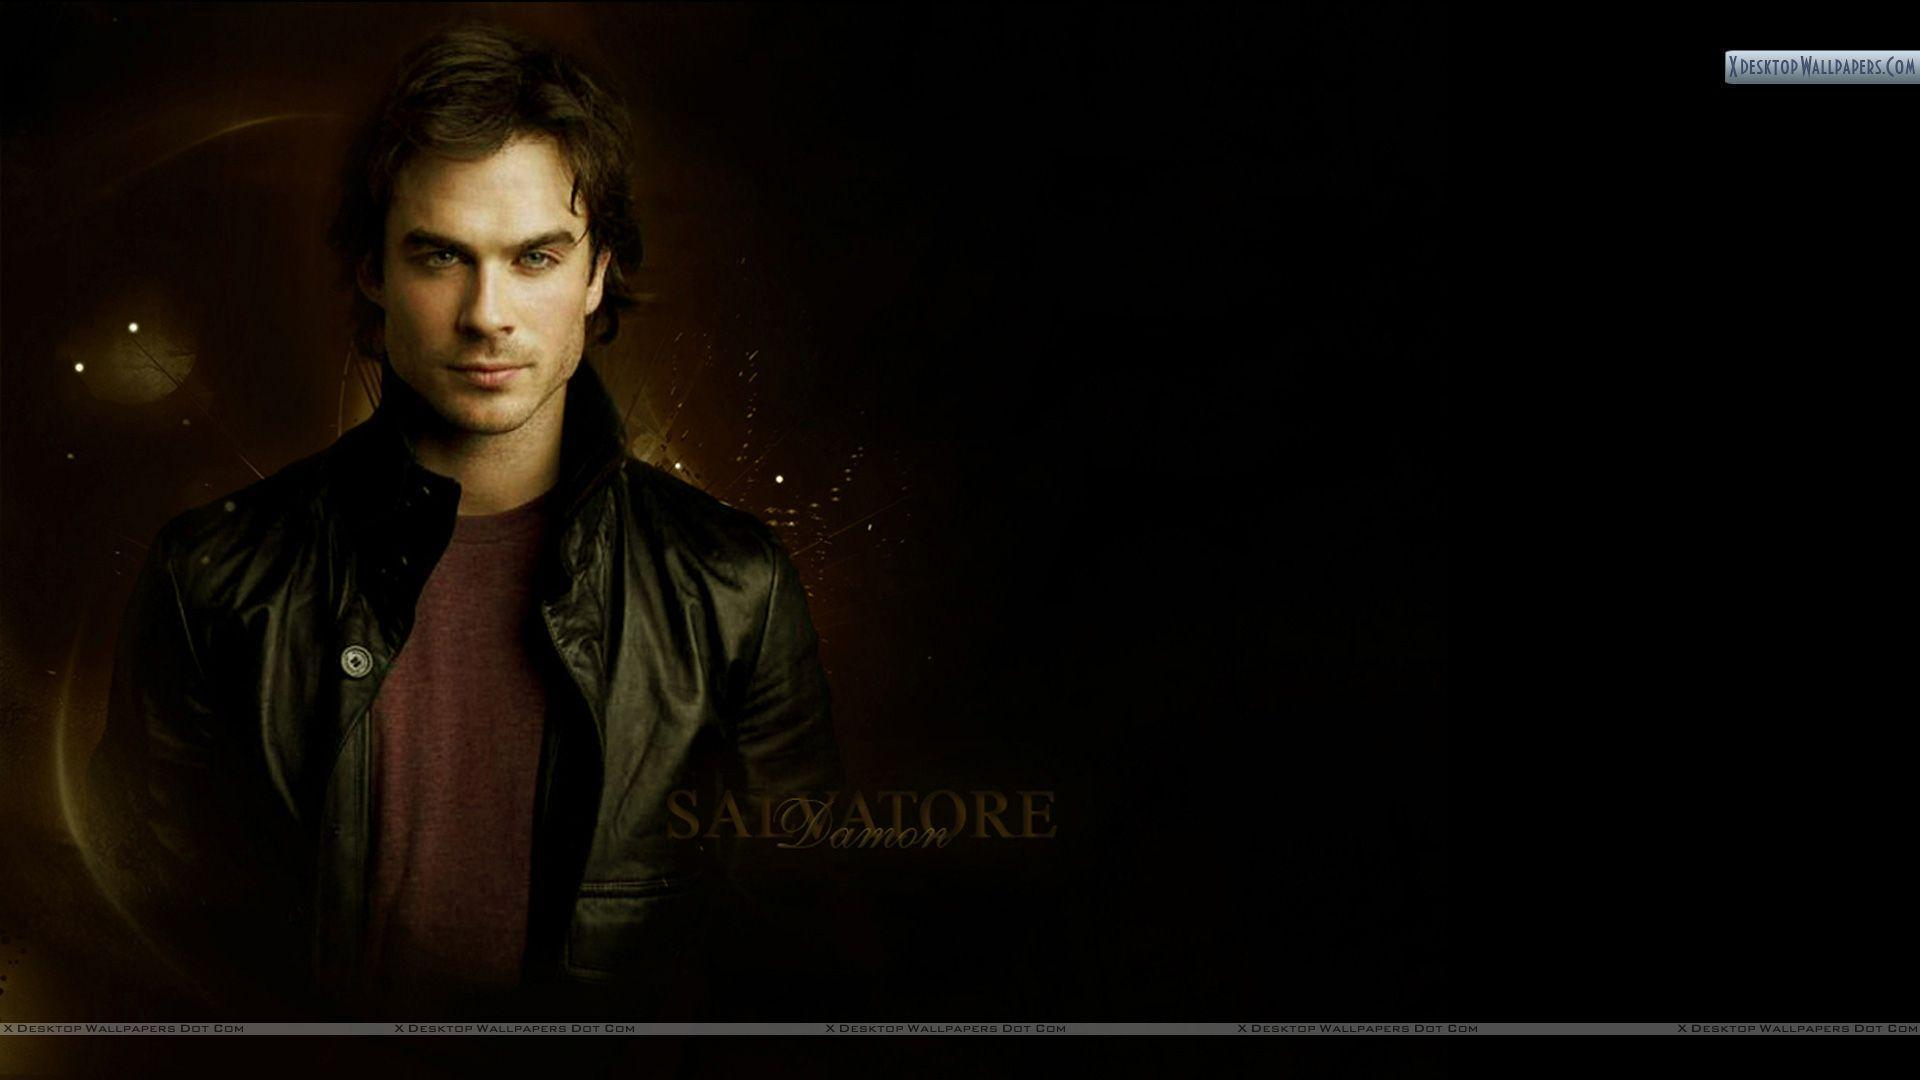 Ian Somerhalder As Damon Salvatore Wallpapers